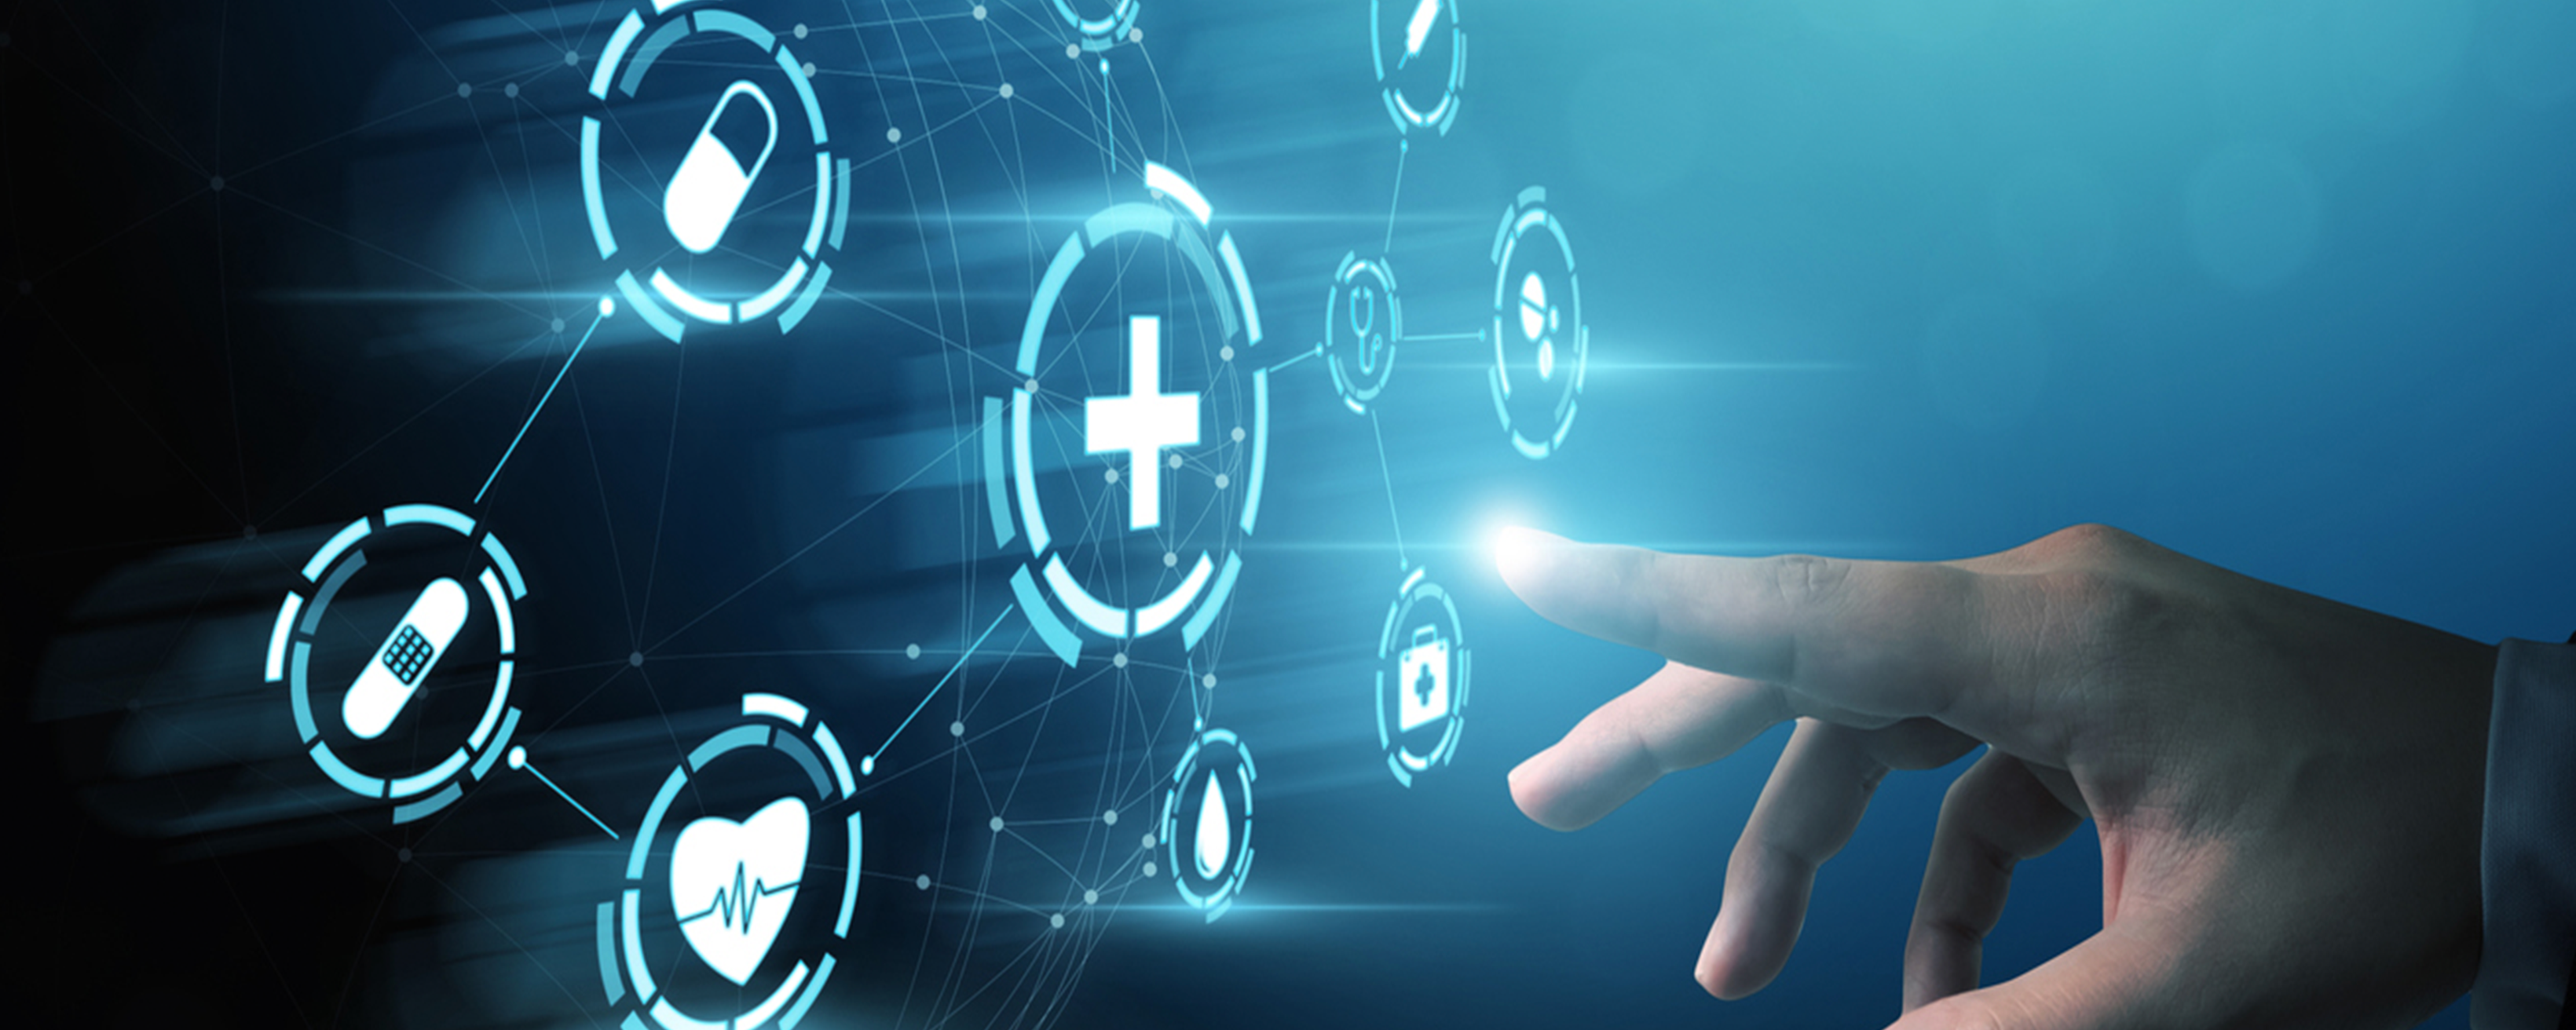 The need for digital therapeutics has been highlighted with the increase in social distancing, amidst the recent pandemic.